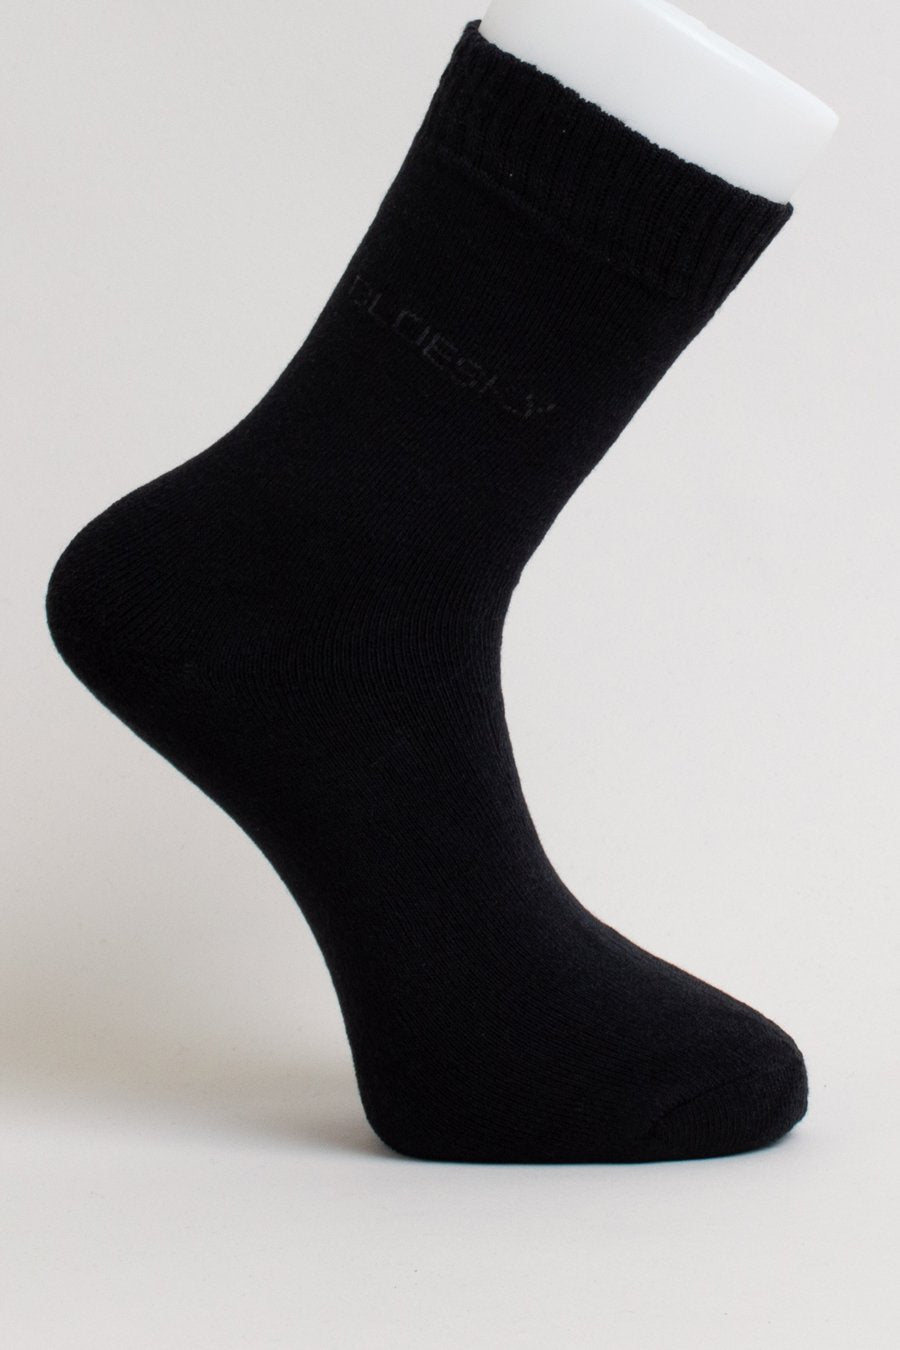 Men's Activewear Sock, Bamboo